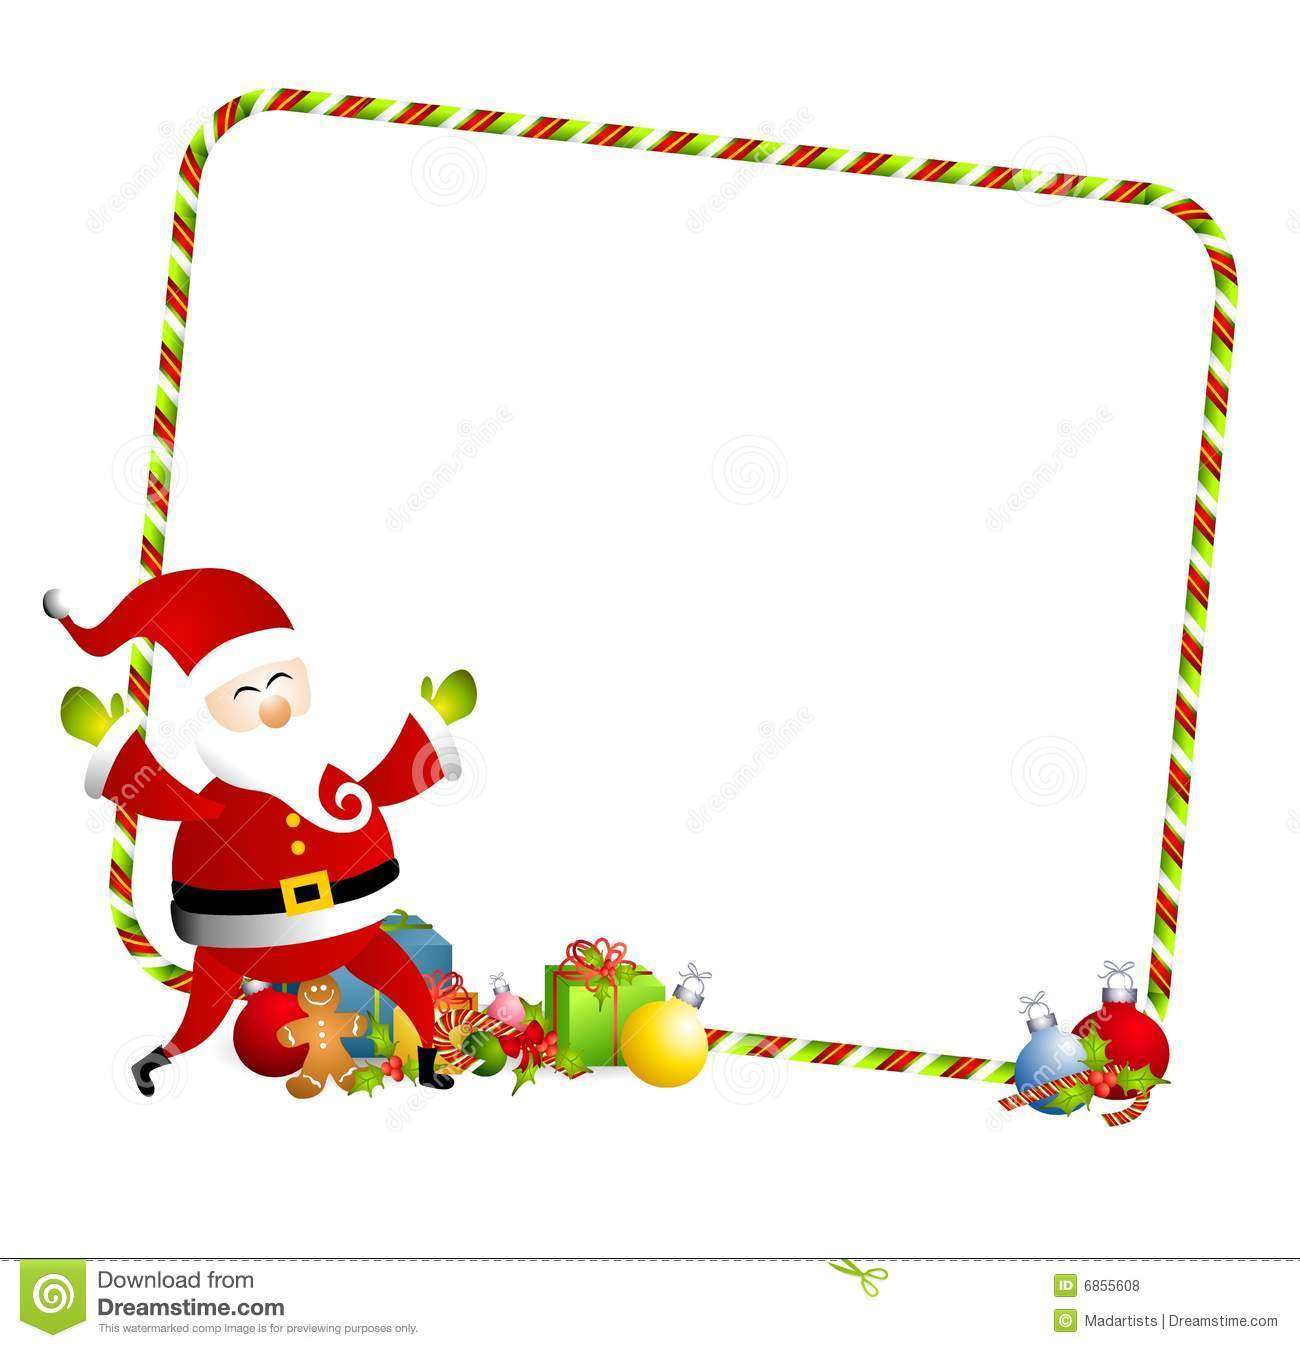 68059 Christmas free clipart.